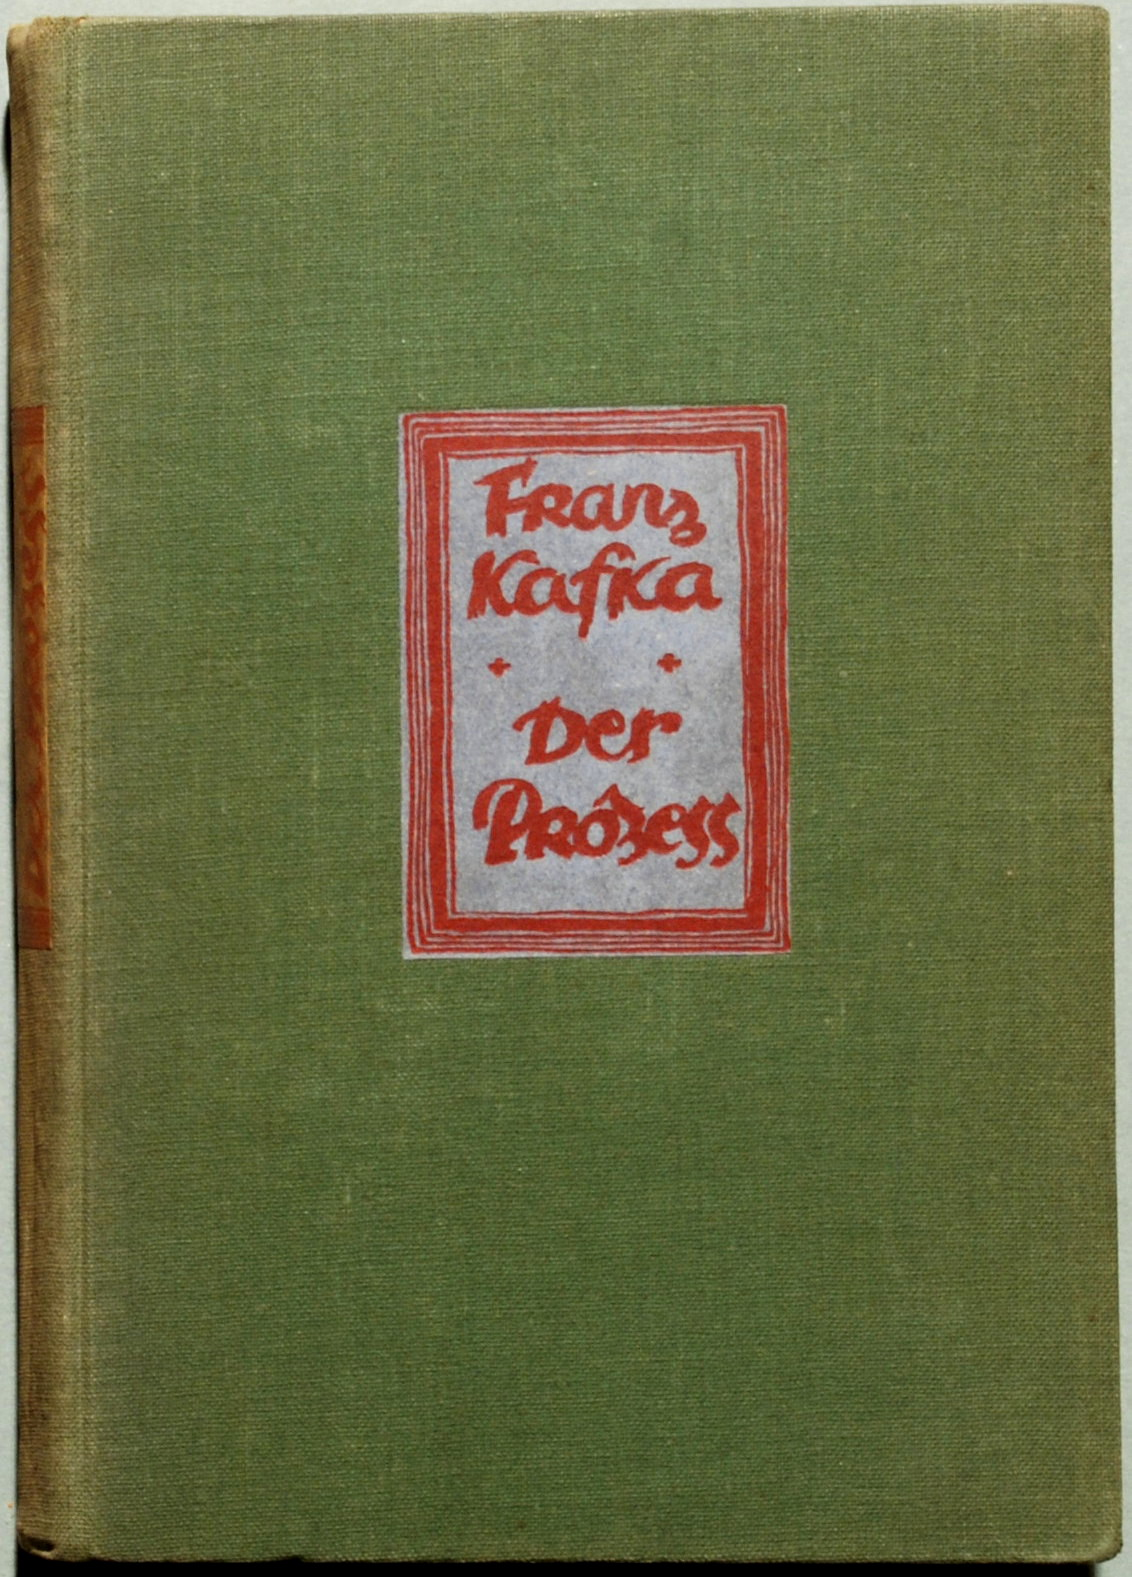 https://upload.wikimedia.org/wikipedia/commons/8/87/Kafka_Der_Prozess_1925.jpg